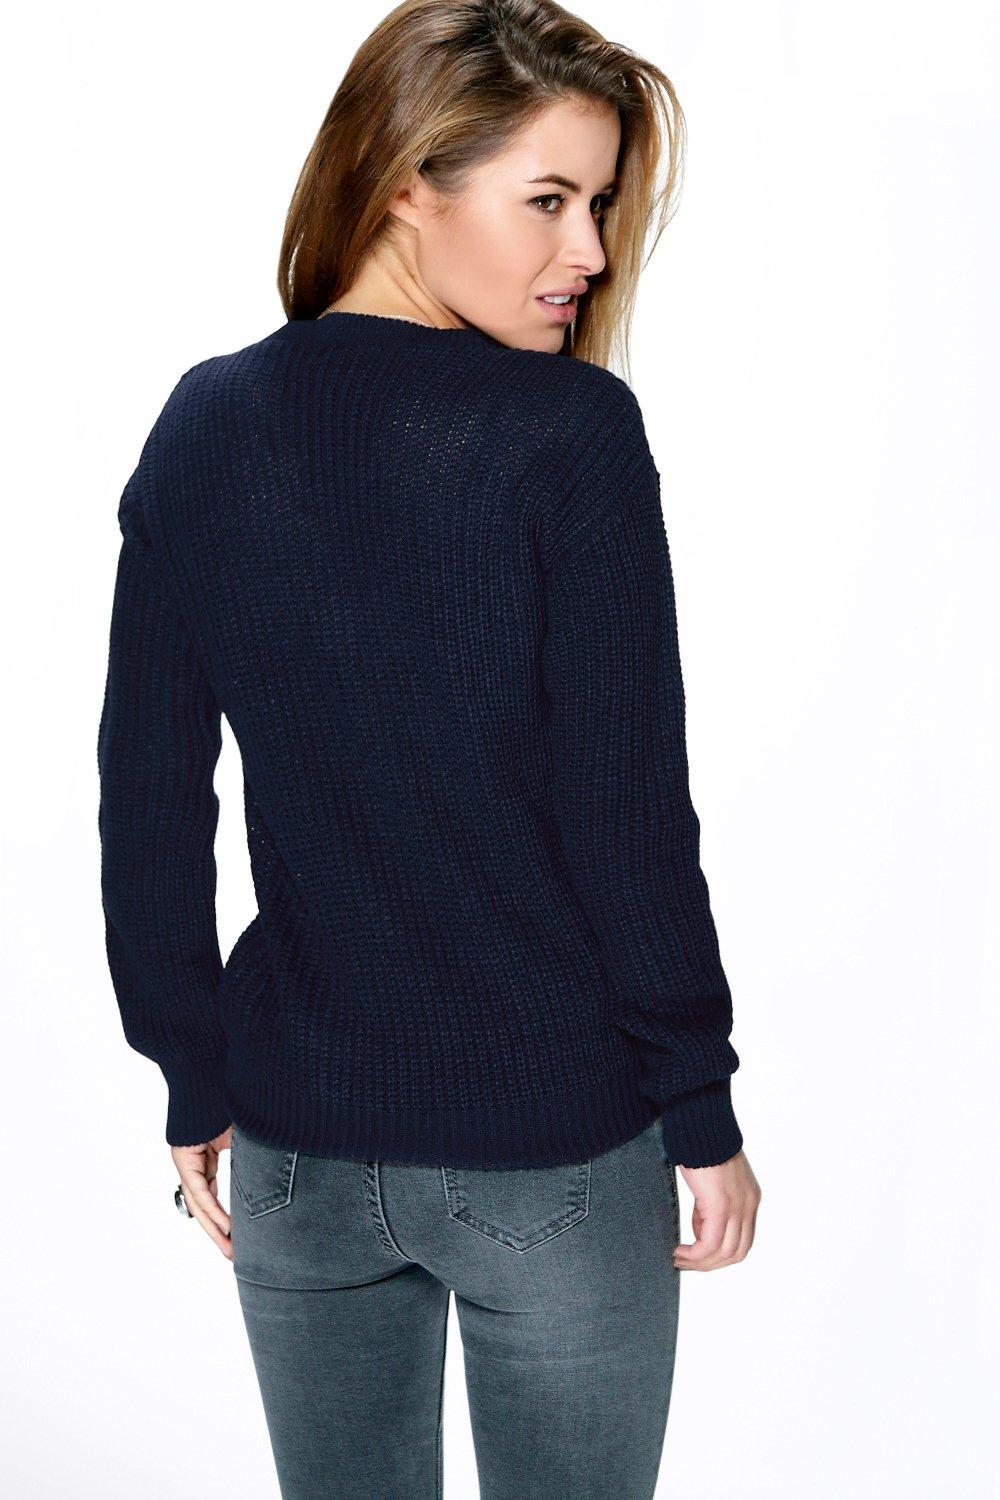 Find great deals on eBay for womens oversized jumper. Shop with confidence.